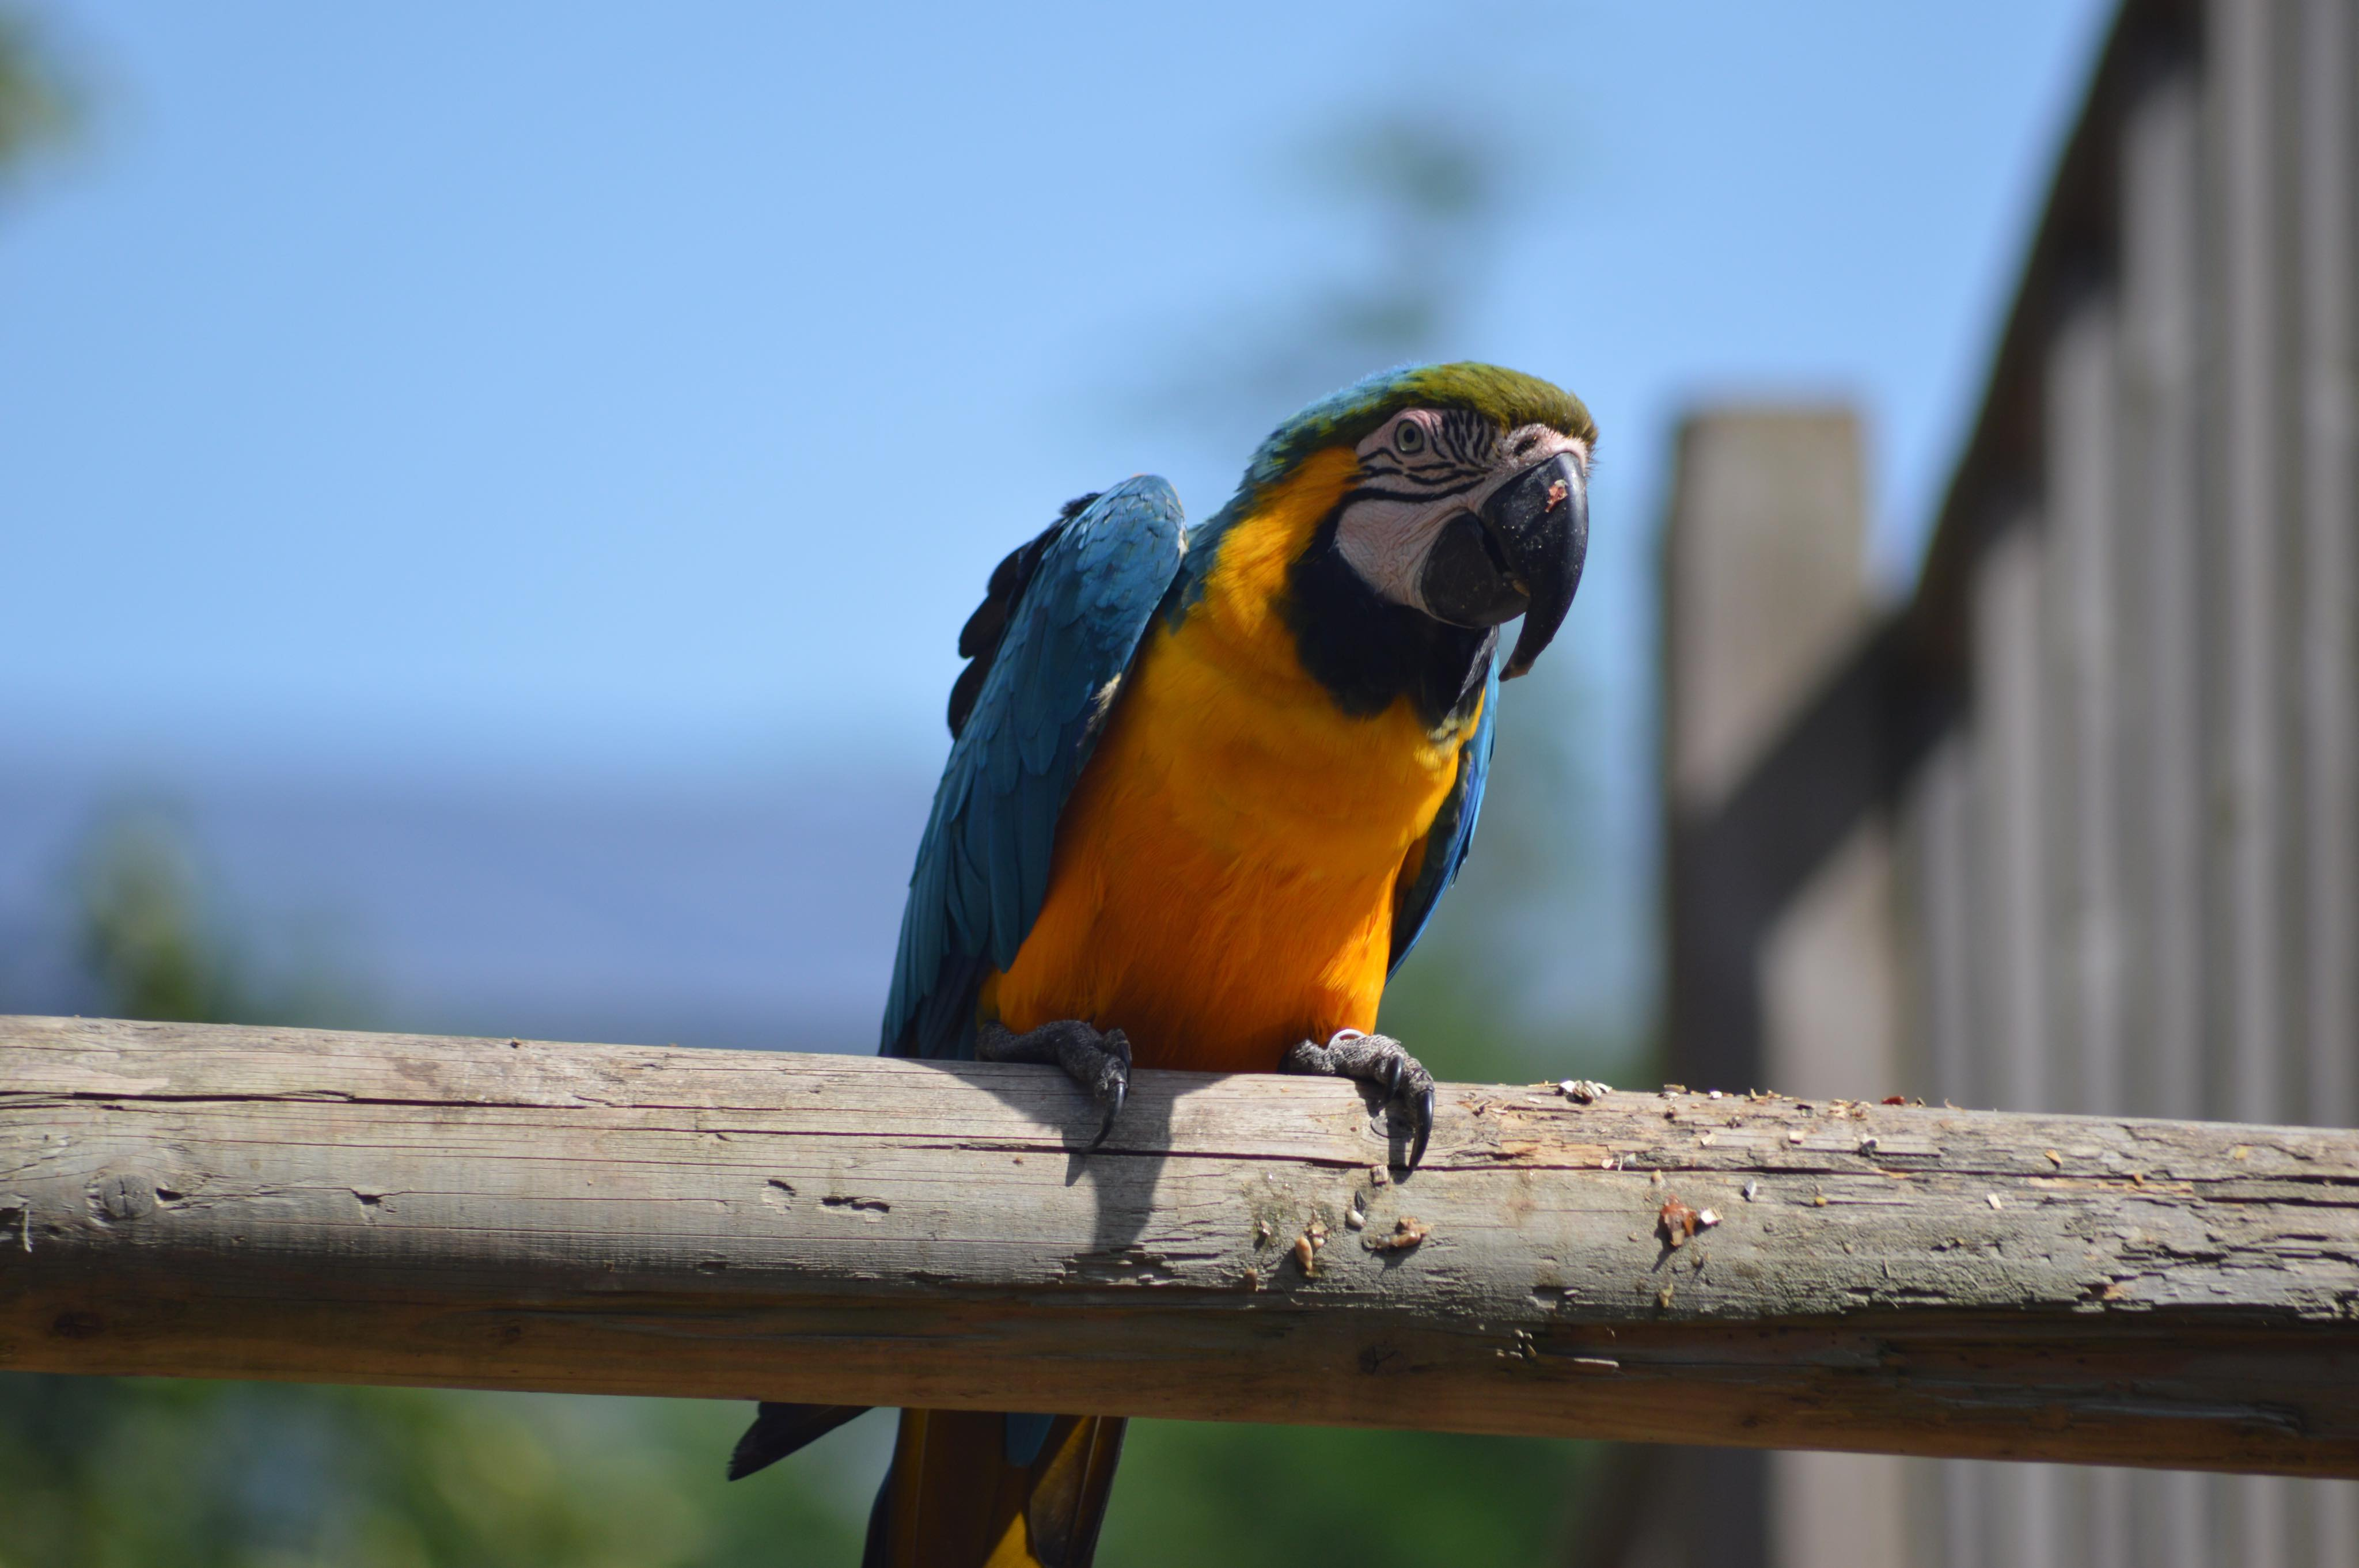 Macaw at Wingham Wildlife Park